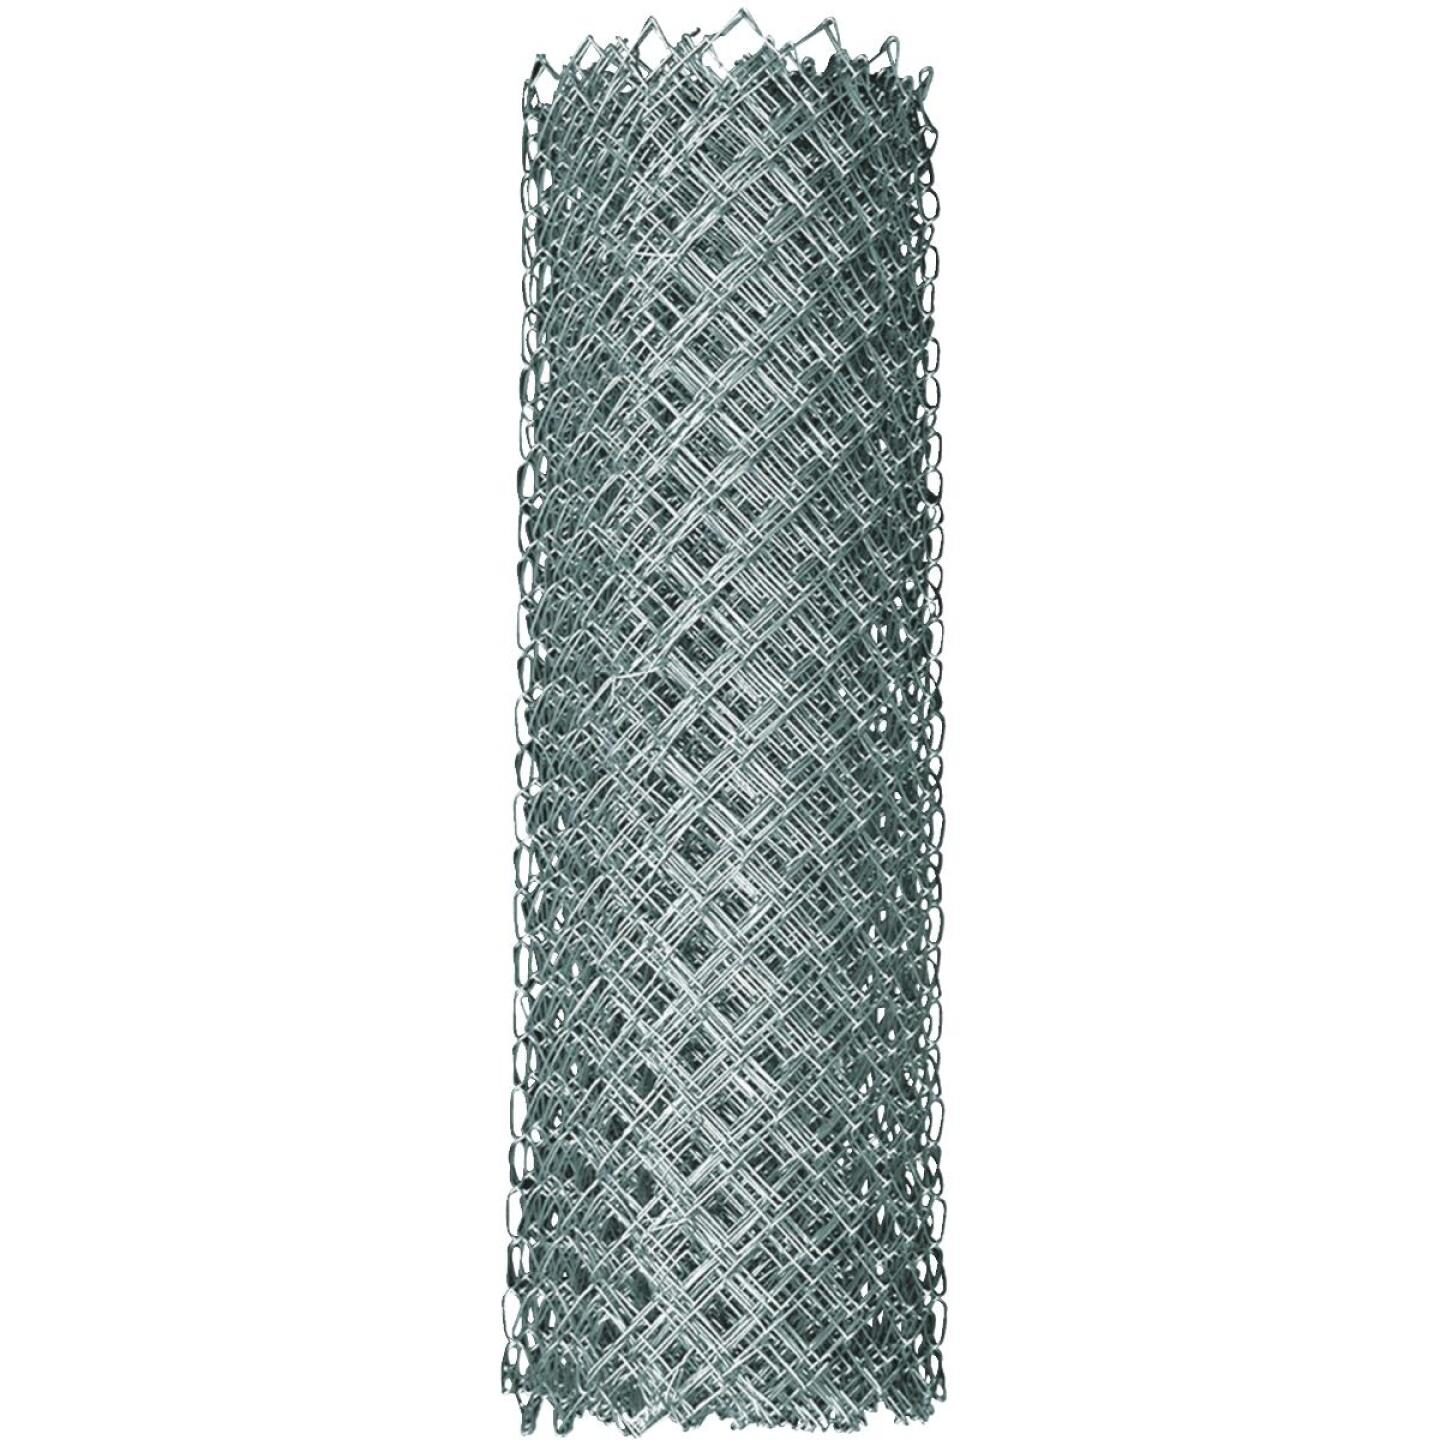 Midwest Air Tech 72 in. x 50 ft. 2-3/8 in. 12.5 ga Chain Link Fencing Image 1